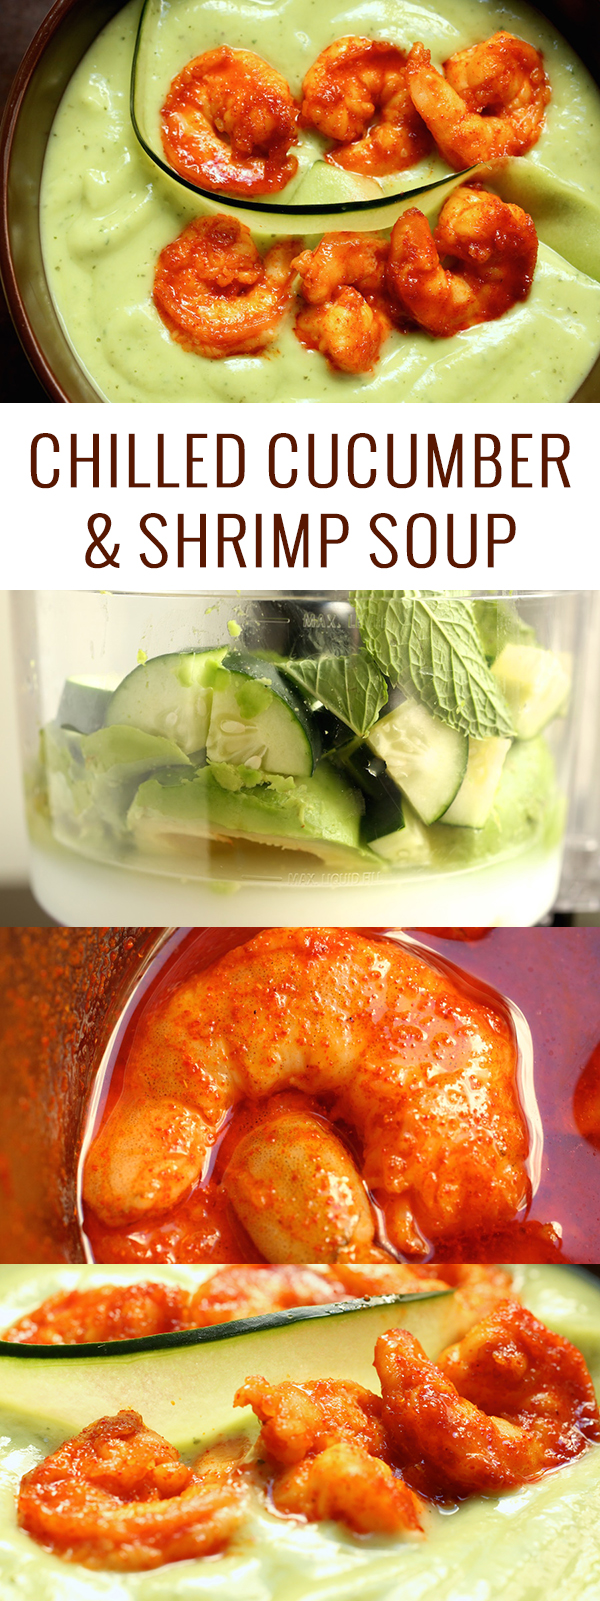 Chilled Cucumber & Shrimp Soup